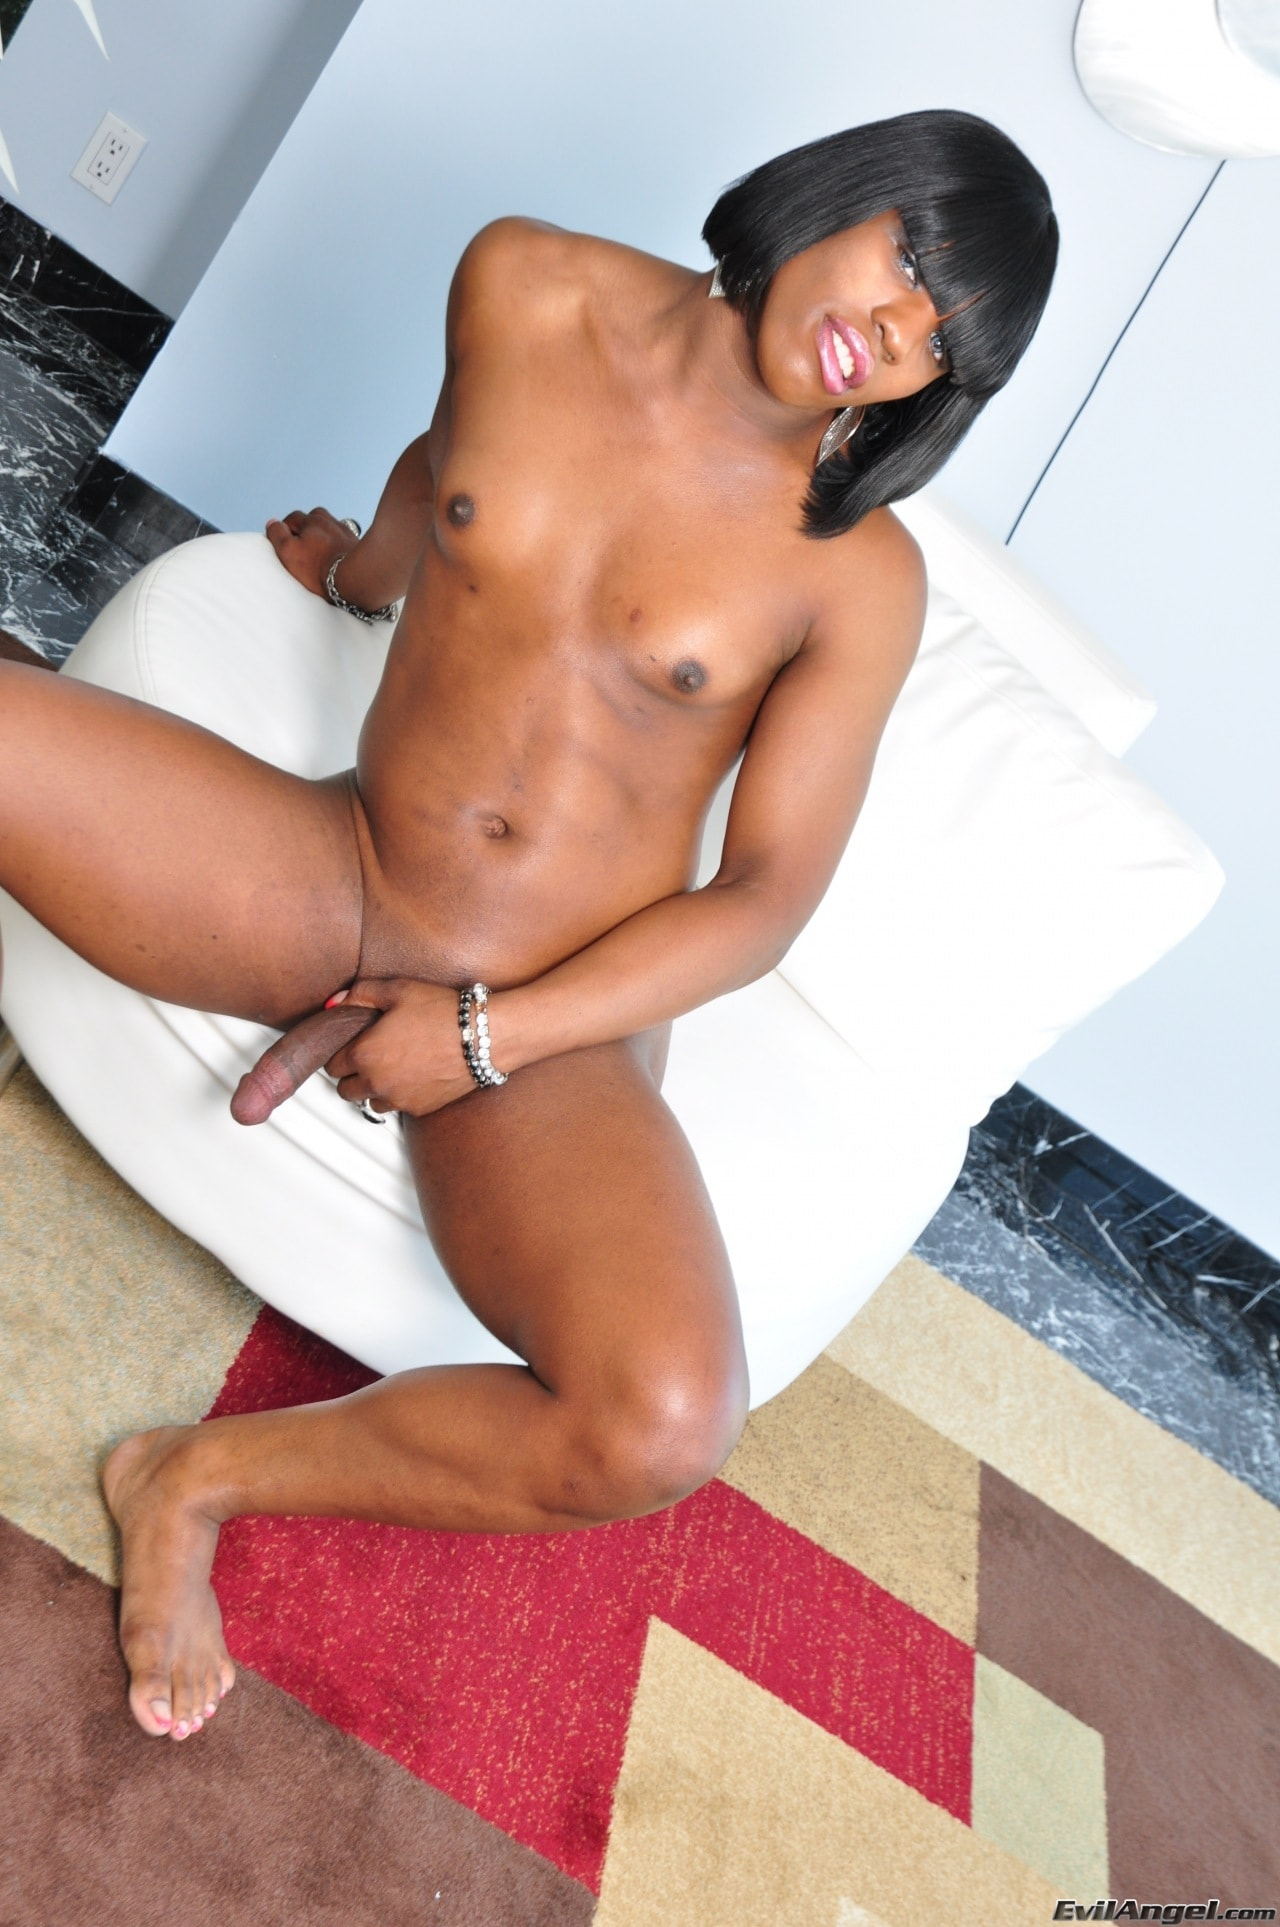 I Love Black Shemales 'Black Shemale Idol - The Auditions 02' starring Naughty Natasha (Photo 50)